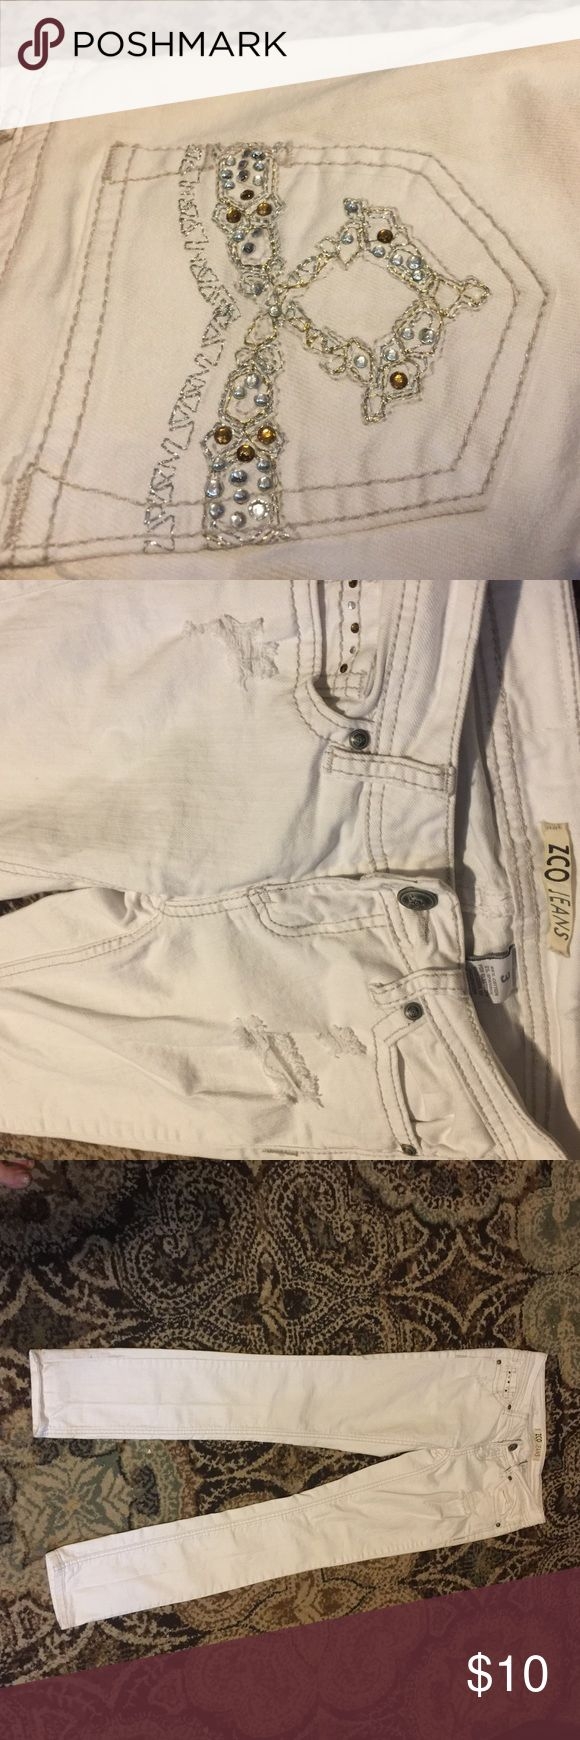 ZCO jeans White jeans with jewel blink detailed back pockets. Great condition. Bundle to save!! ZCO Jeans Skinny